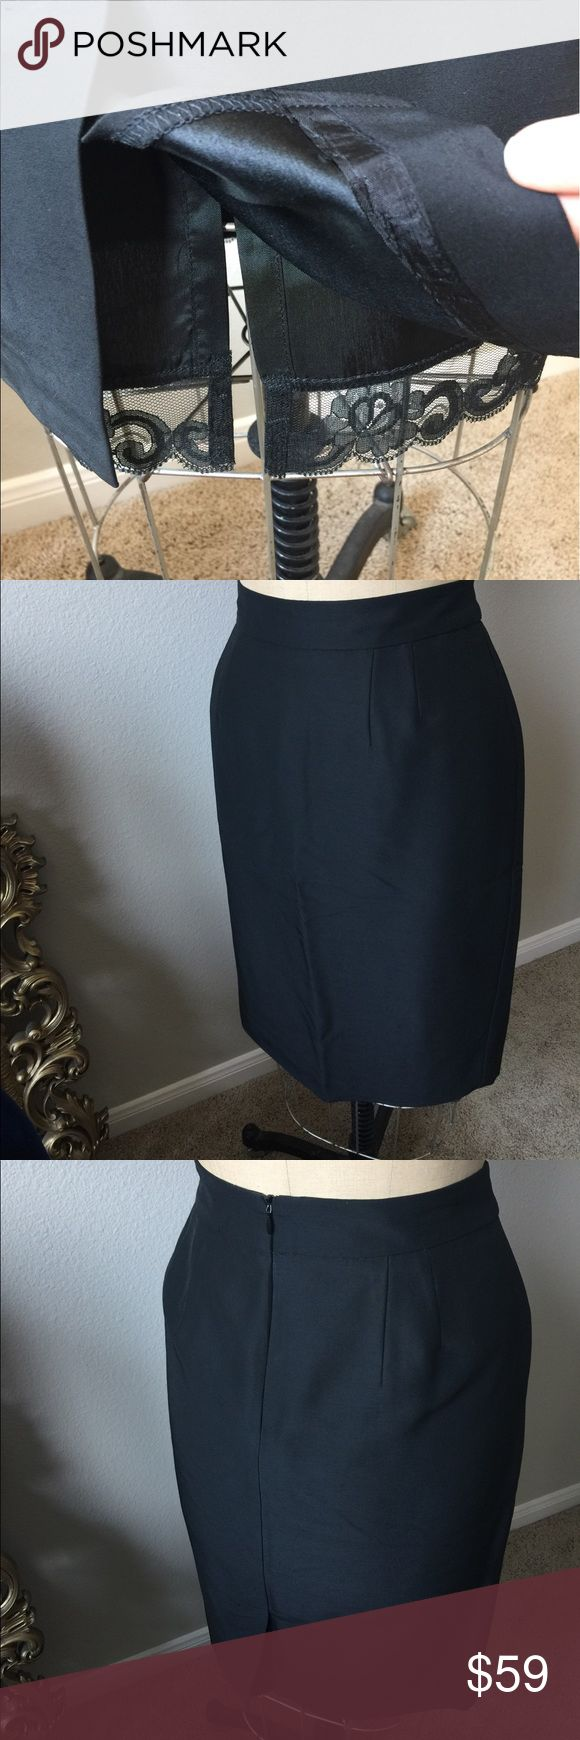 Gorgeous Trina Turk Black Pencil Skirt! Black Trina Turk Los Angeles Pencil Skirt. The pics don't do this one justice! Very nice skirt!! 73% wool 27% silk. The lining has lace at the bottom that peaks through the bottom of the skirt. Zips in back. Small slit in back. Size 8. Great condition! Trina Turk Skirts Pencil